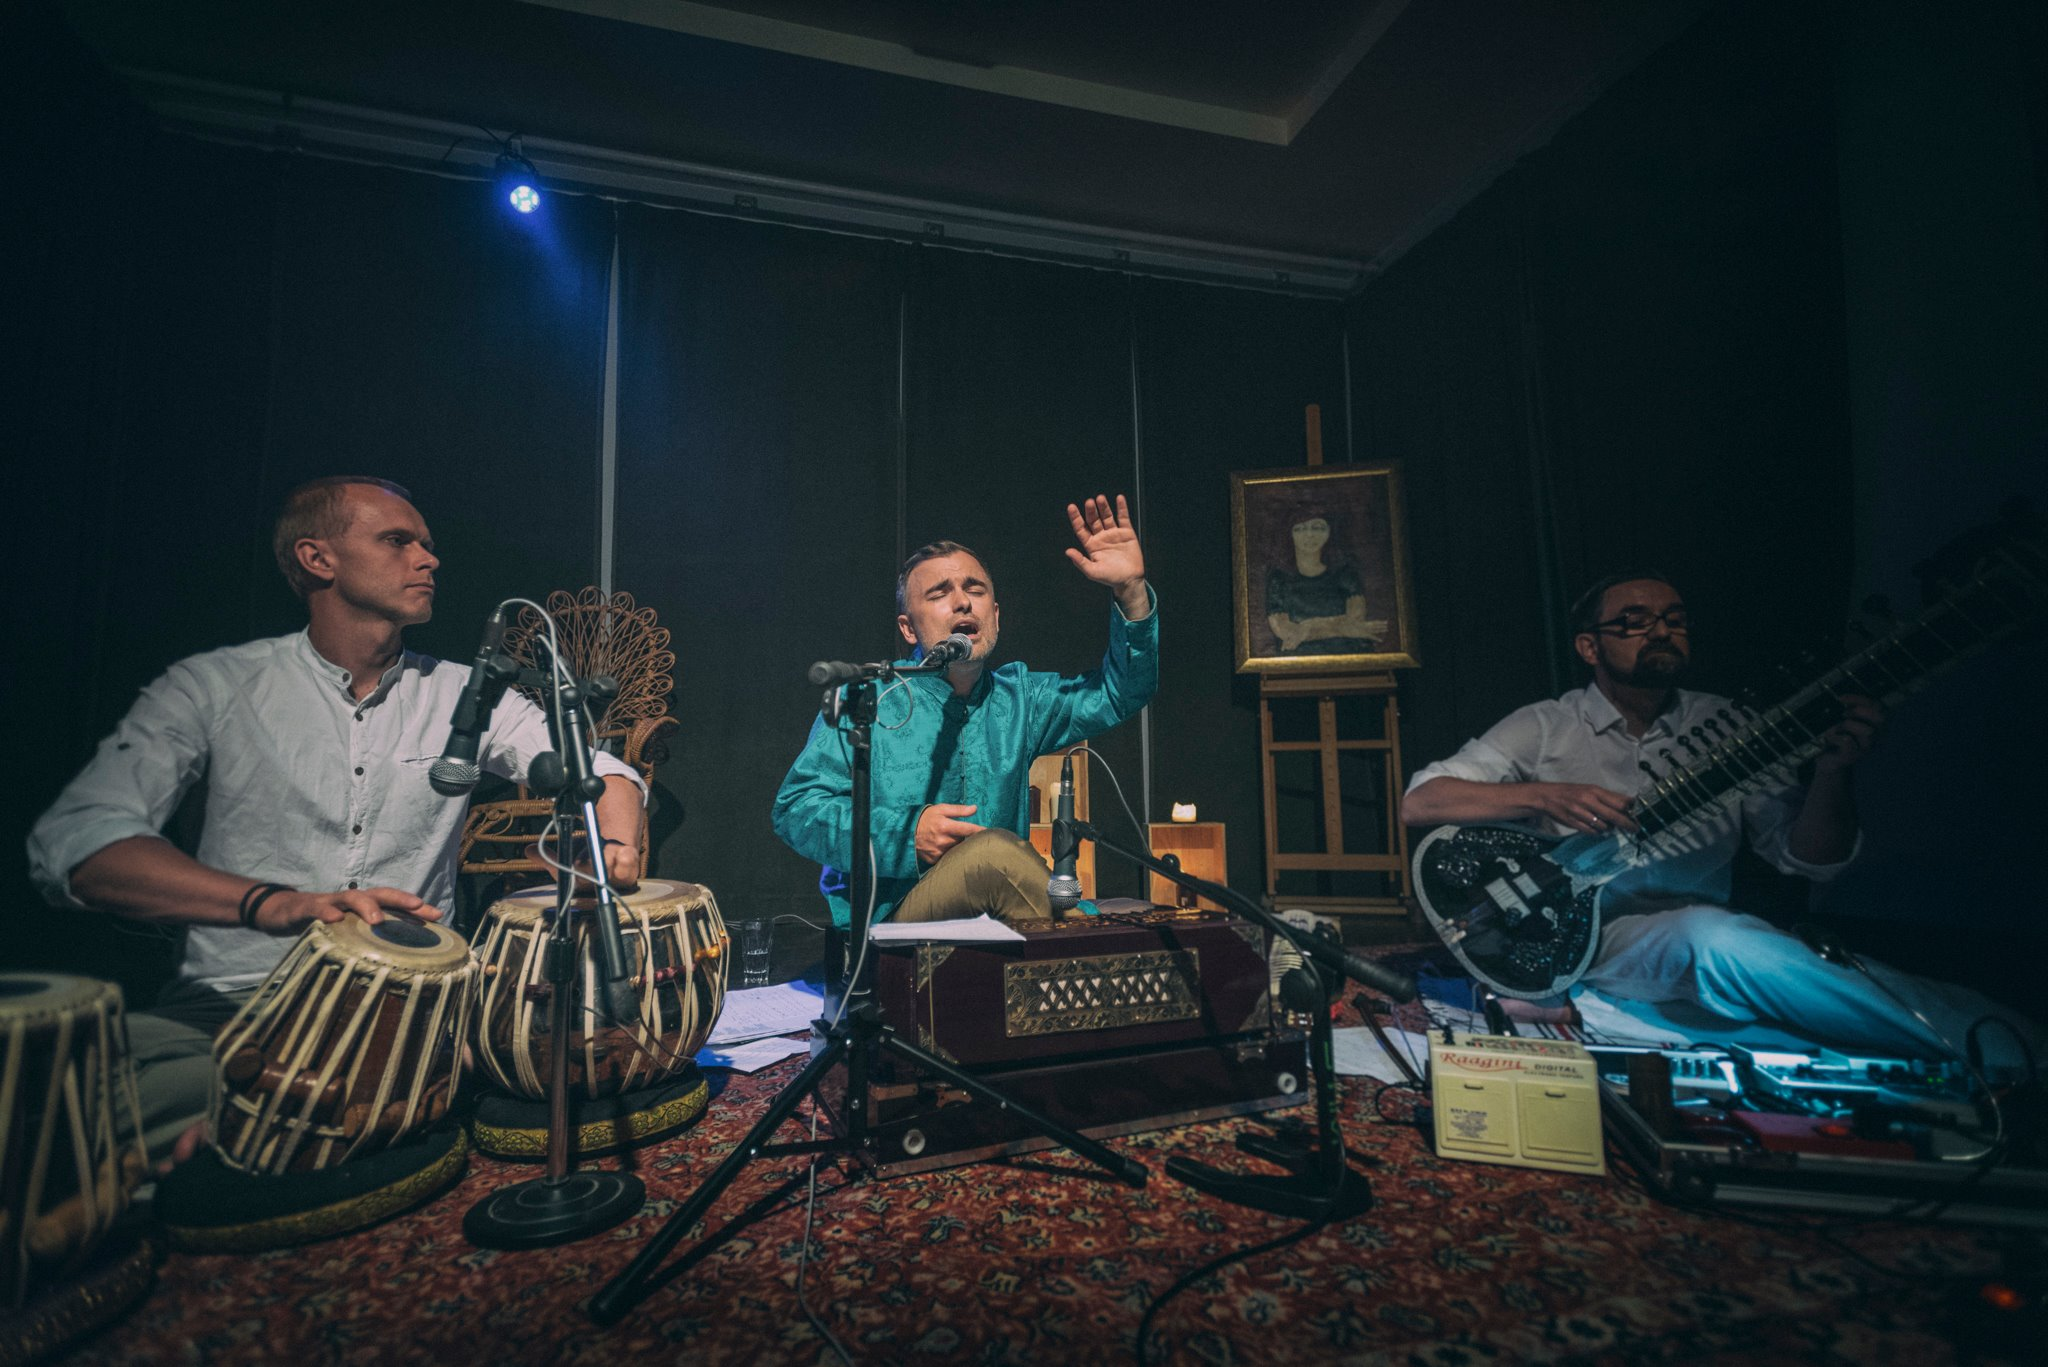 Michał Rudaś and Healing Incantation band will play music from the Indian subcontinent at Bonobo library and café on April 27th (phot. Facebook)